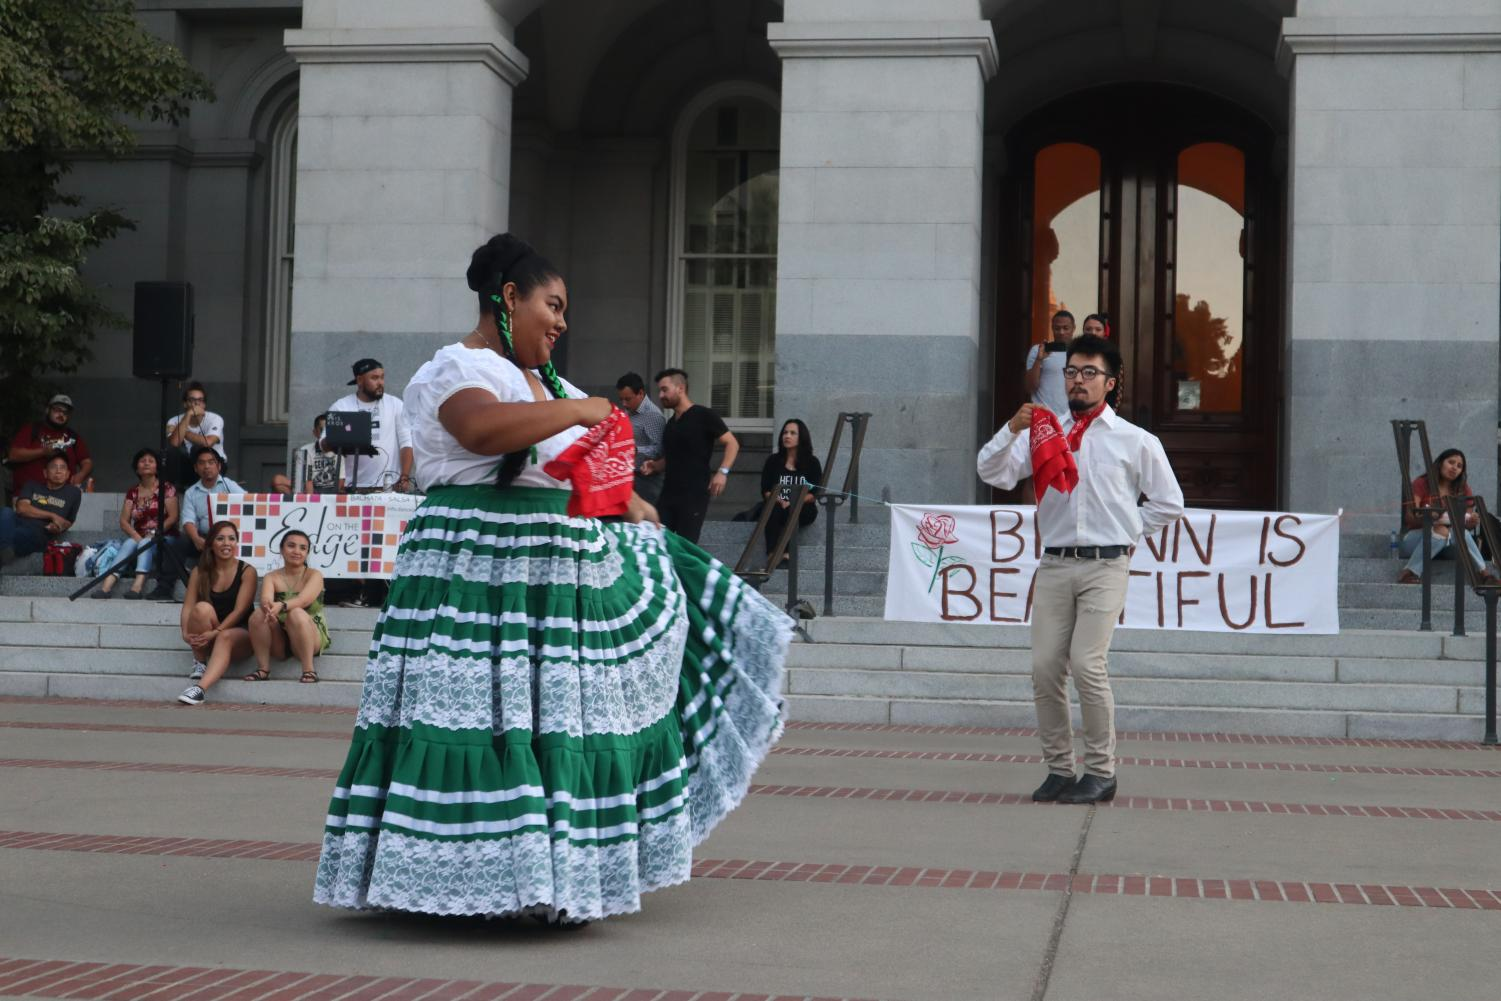 President of Sac State's Baile Folklorico Roxana Javier dances with member Mario Mendez Lopez at the California State Capitol on Tuesday, Sept. 3. Sac State's Brown Issues organization gathered members of the community to honor the lives lost in the Aug. 3 El Paso shooting.